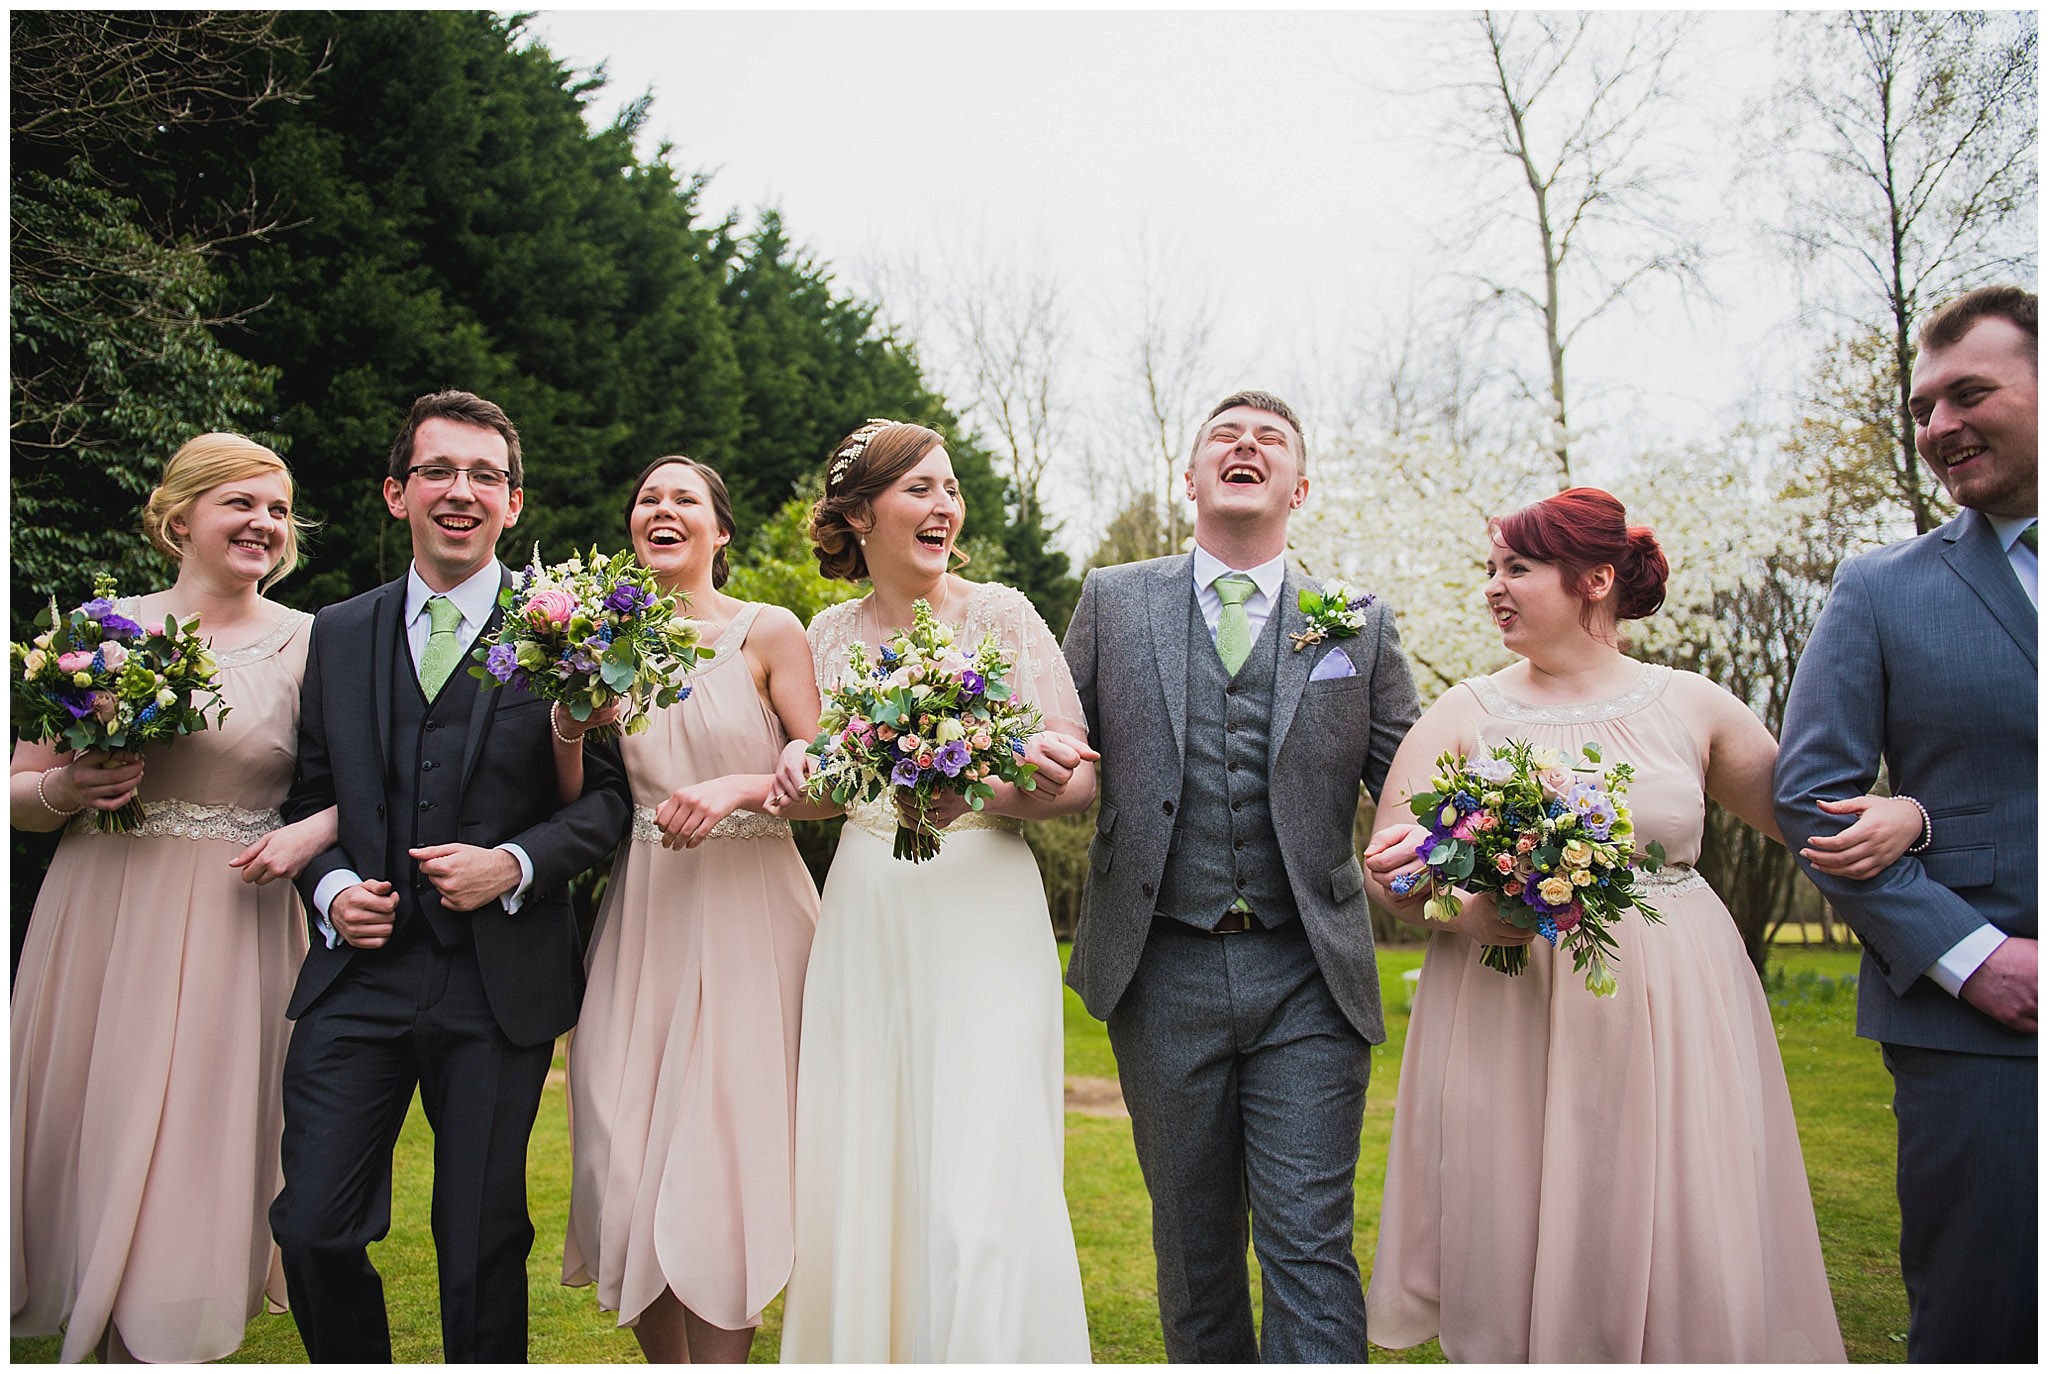 Sarah-&-Dan-The-Old-Vicarage-Wedding-Venue-Dorset-Photographer-28